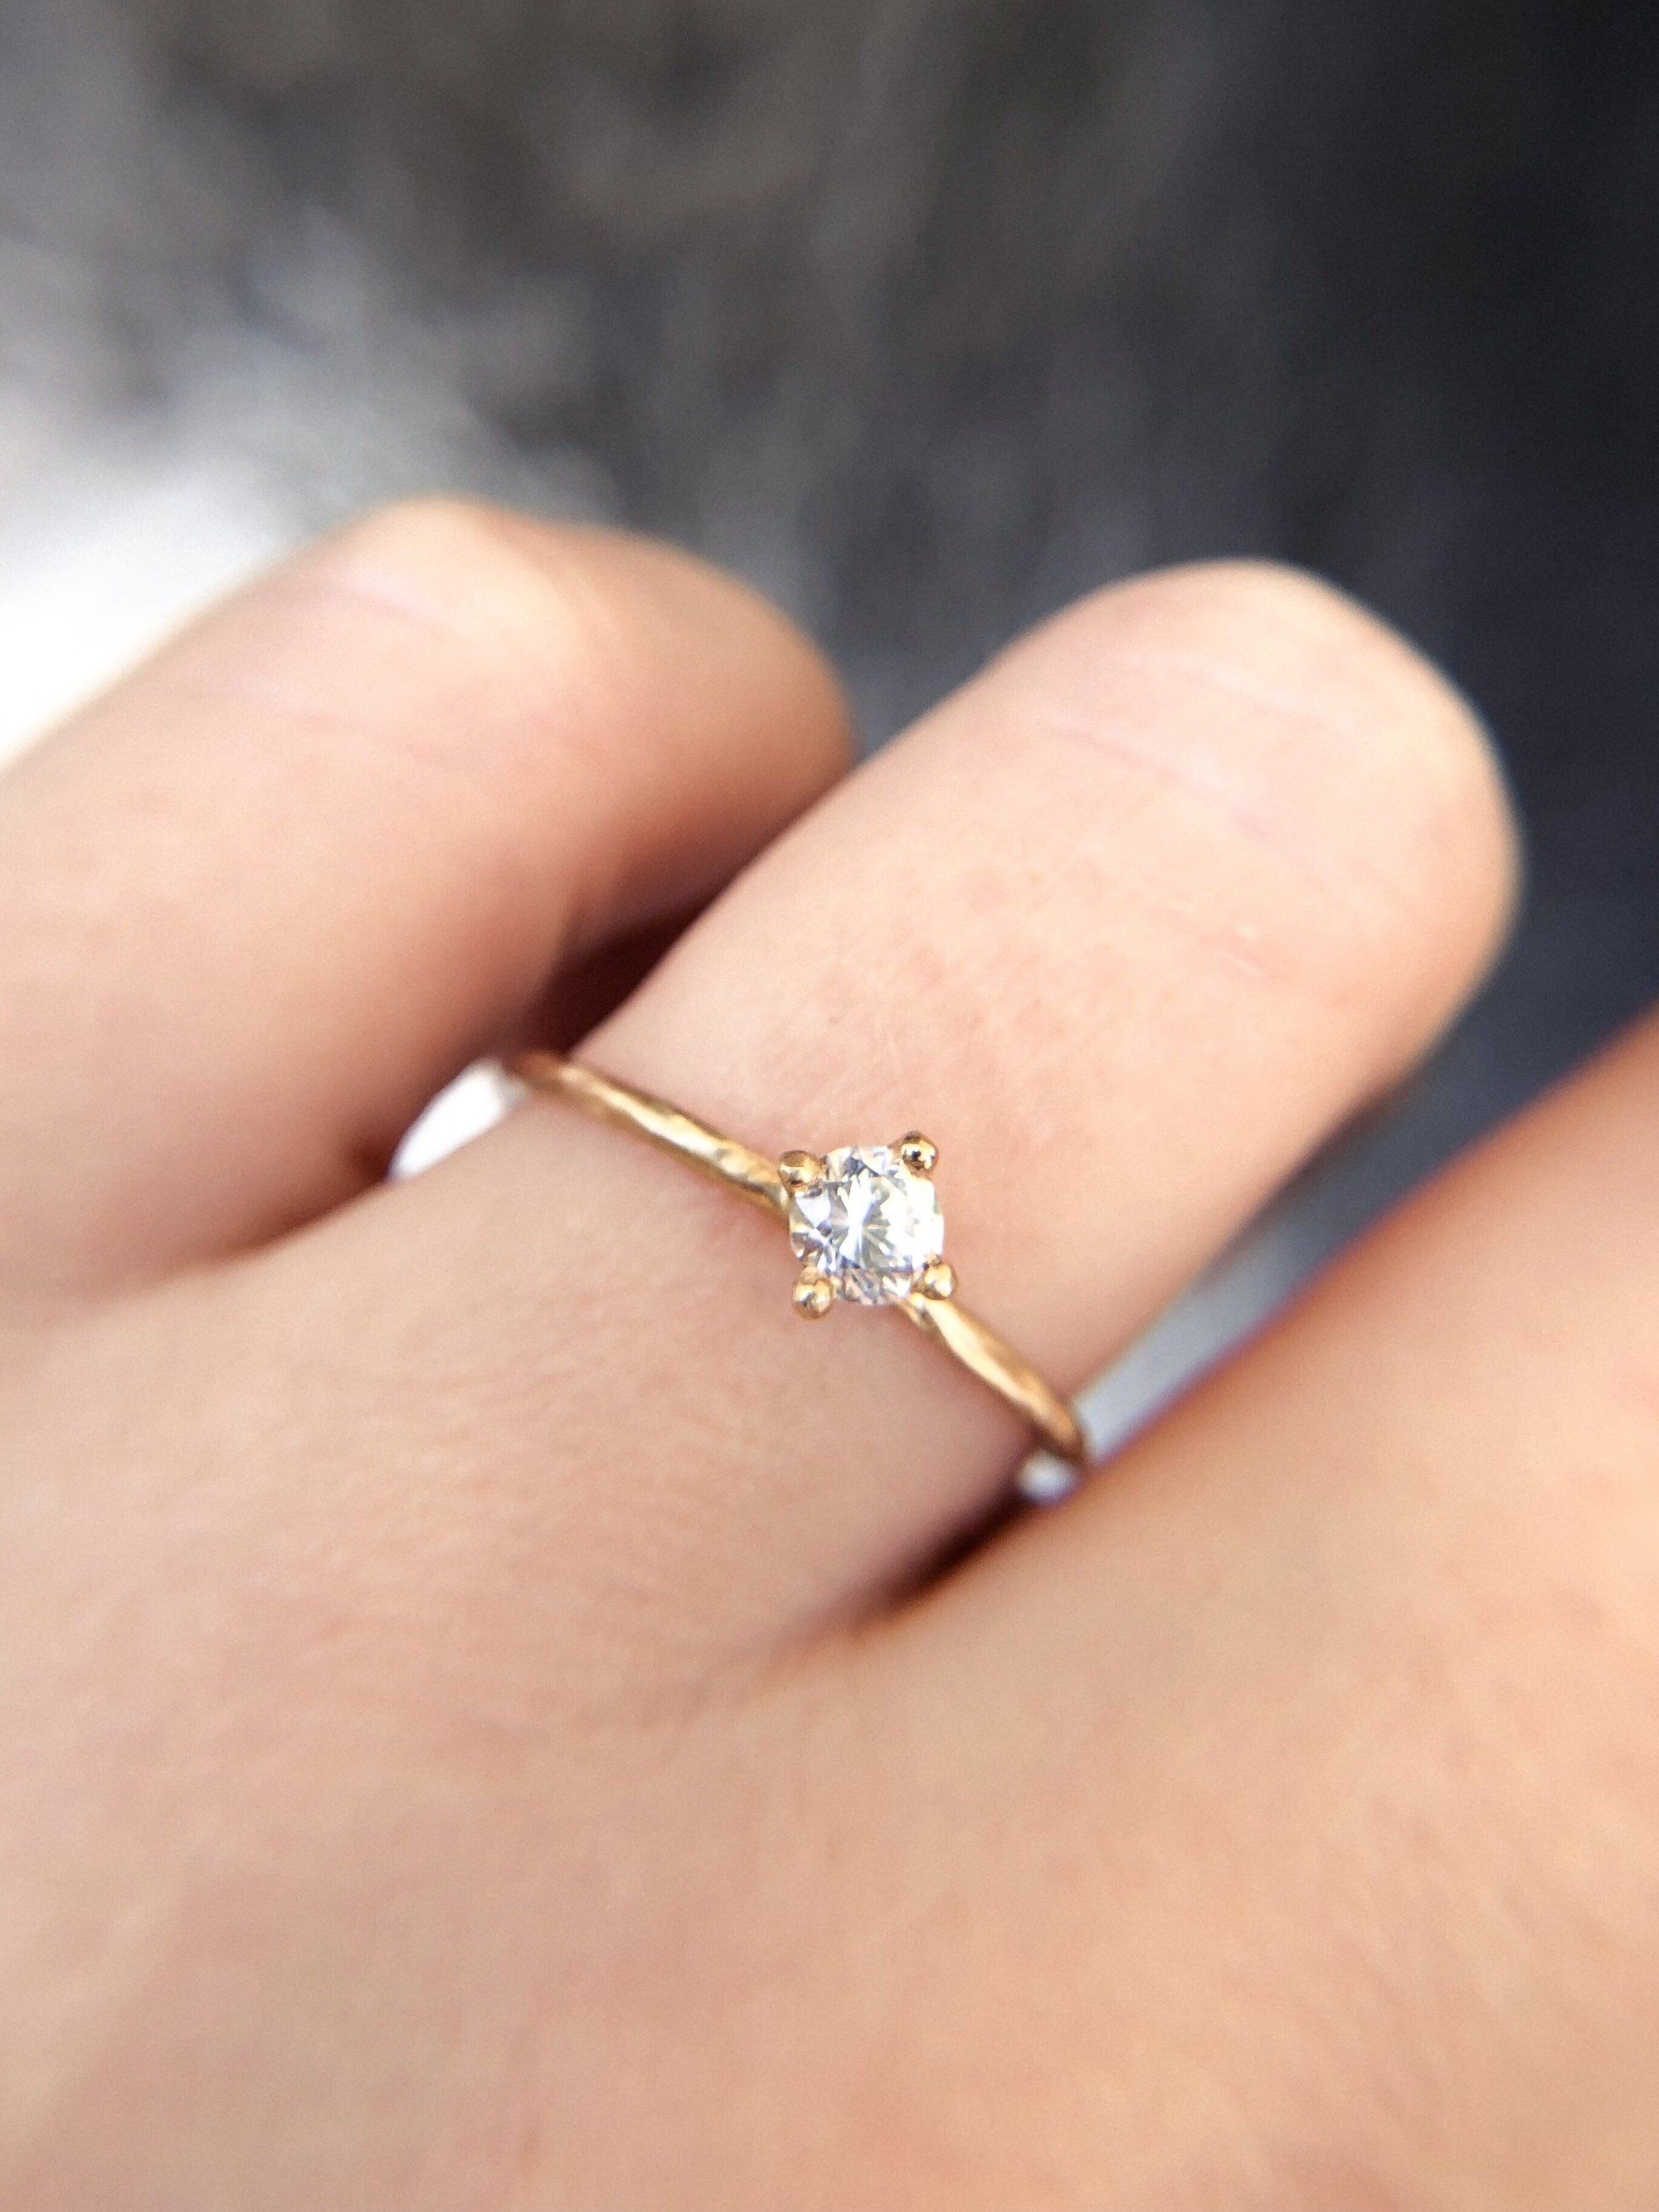 This Boho Alternative Engagement Ring Is Made With Ethical Conflict Free Classic Engagement Ring Solitaire Boho Engagement Ring White Sapphire Engagement Ring